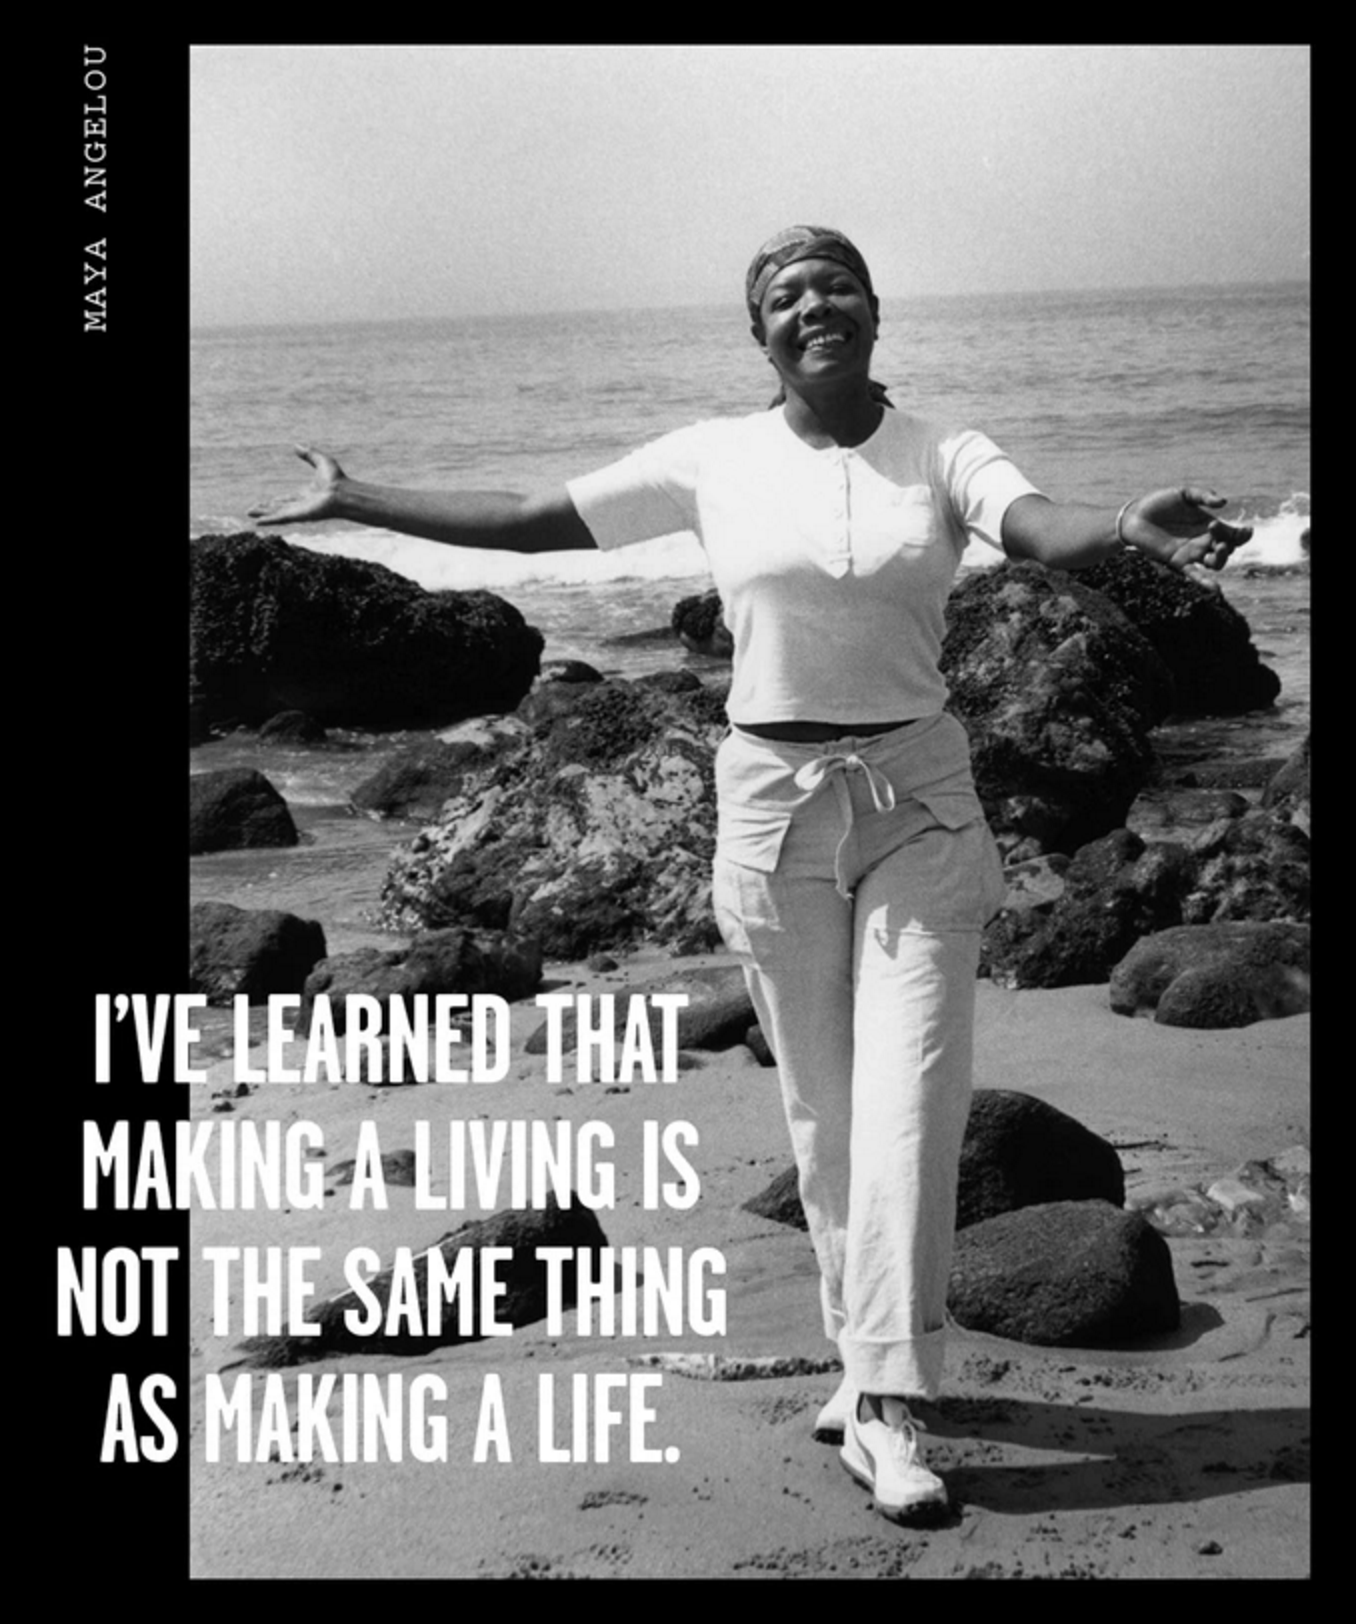 Maya Angelou Making a living vs. Making a life